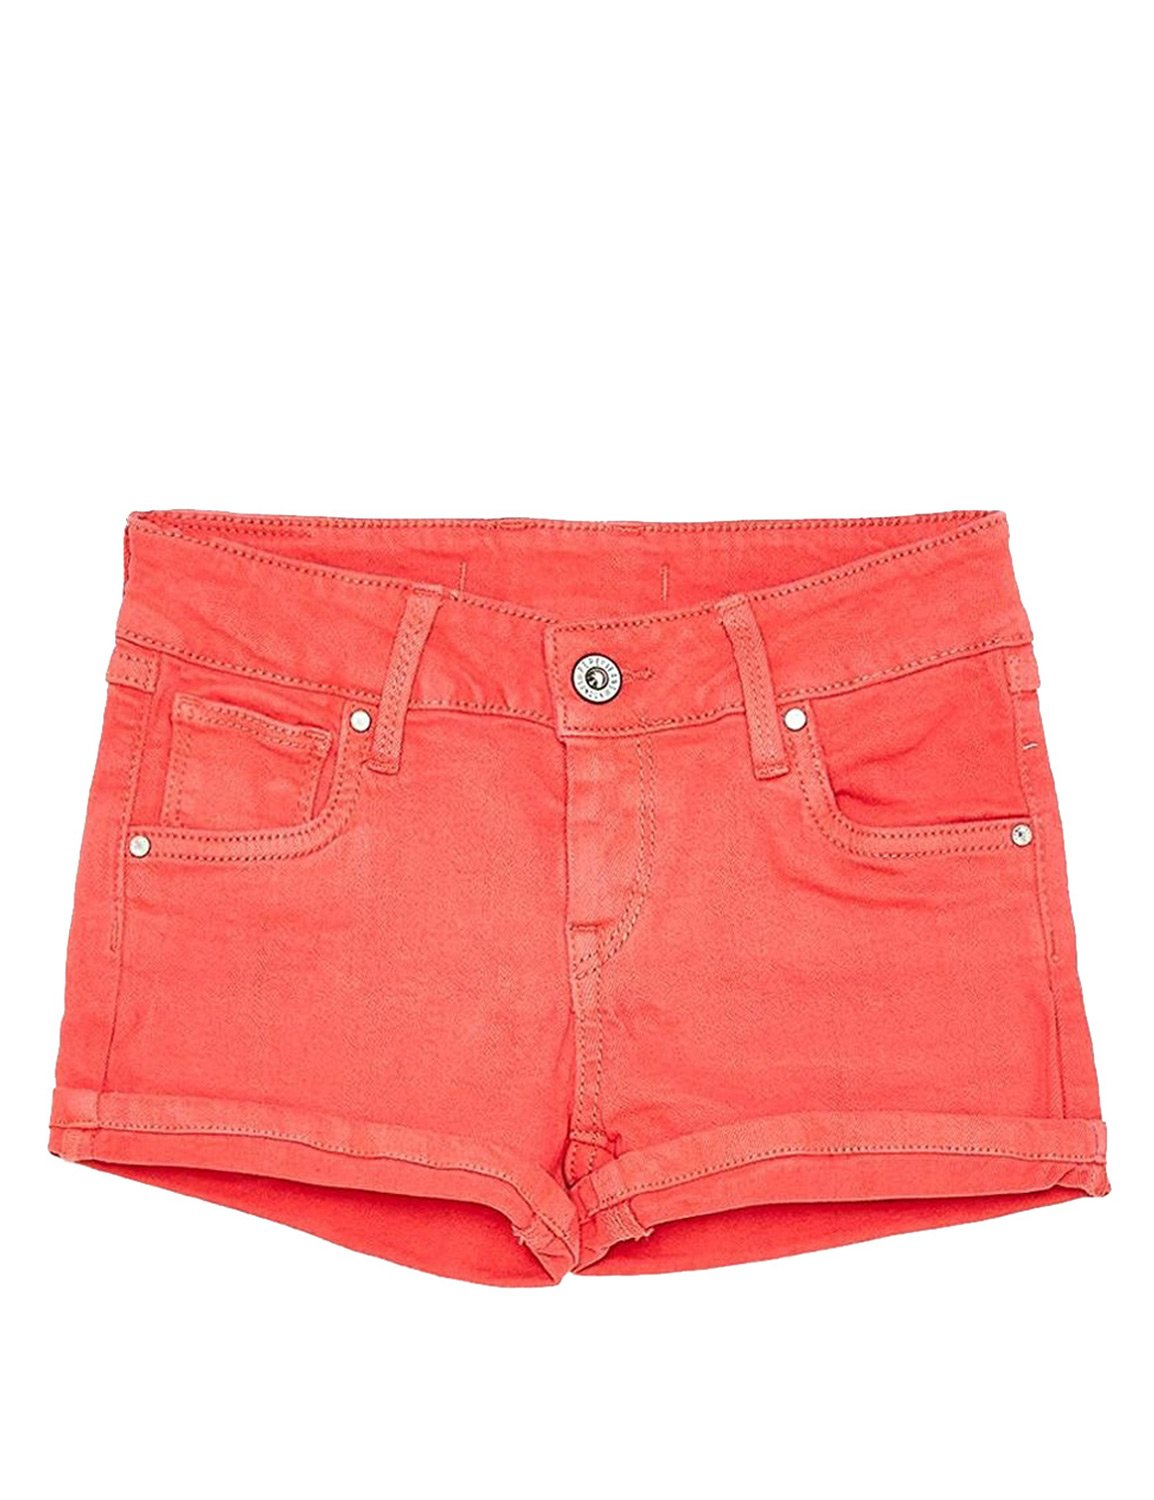 Pepe Jeans Tail Girl's Shorts in Red in Size 8 Years Red